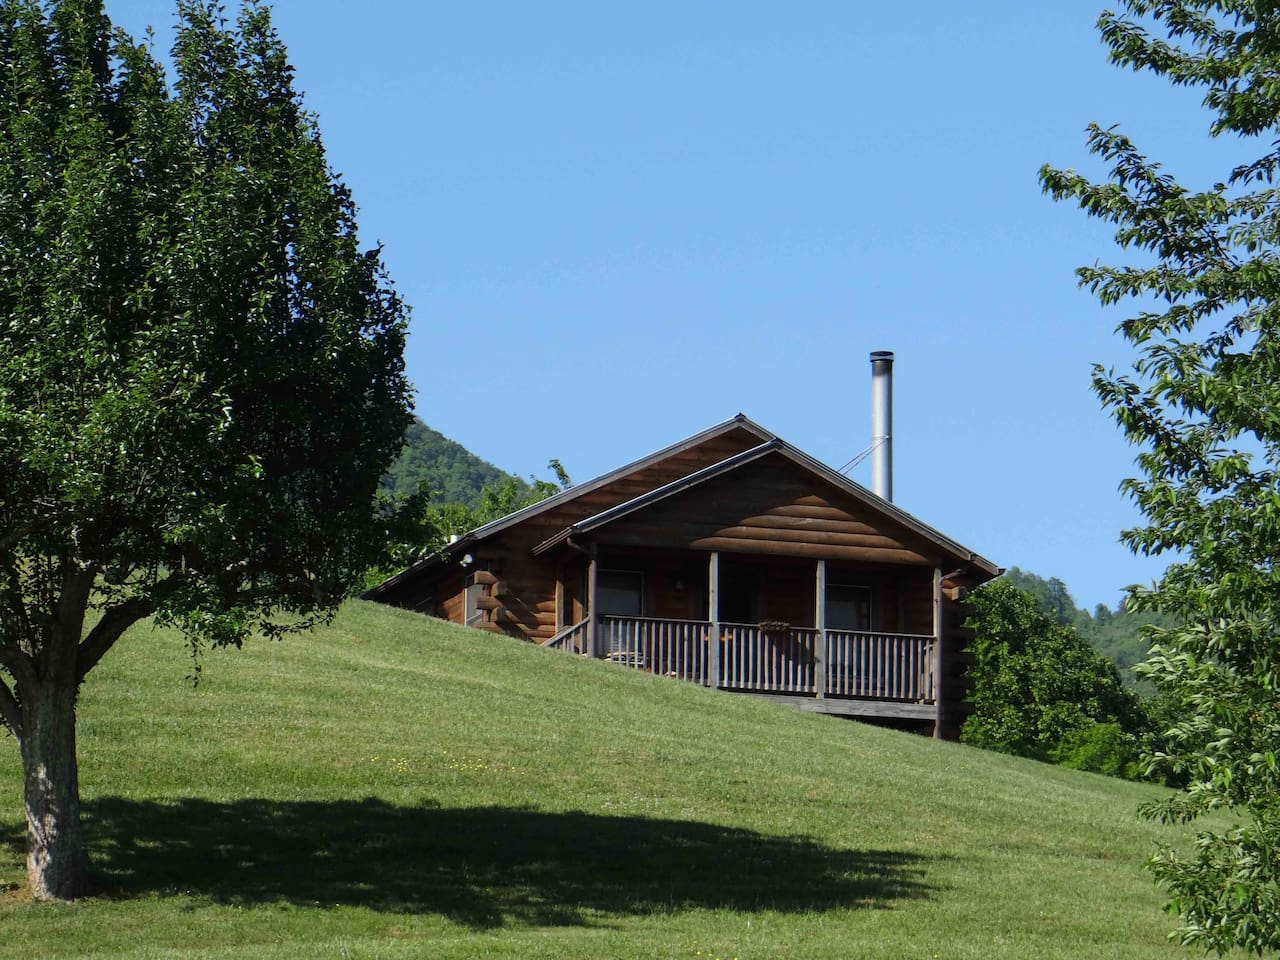 This is the front of the Cherokee Cabin.